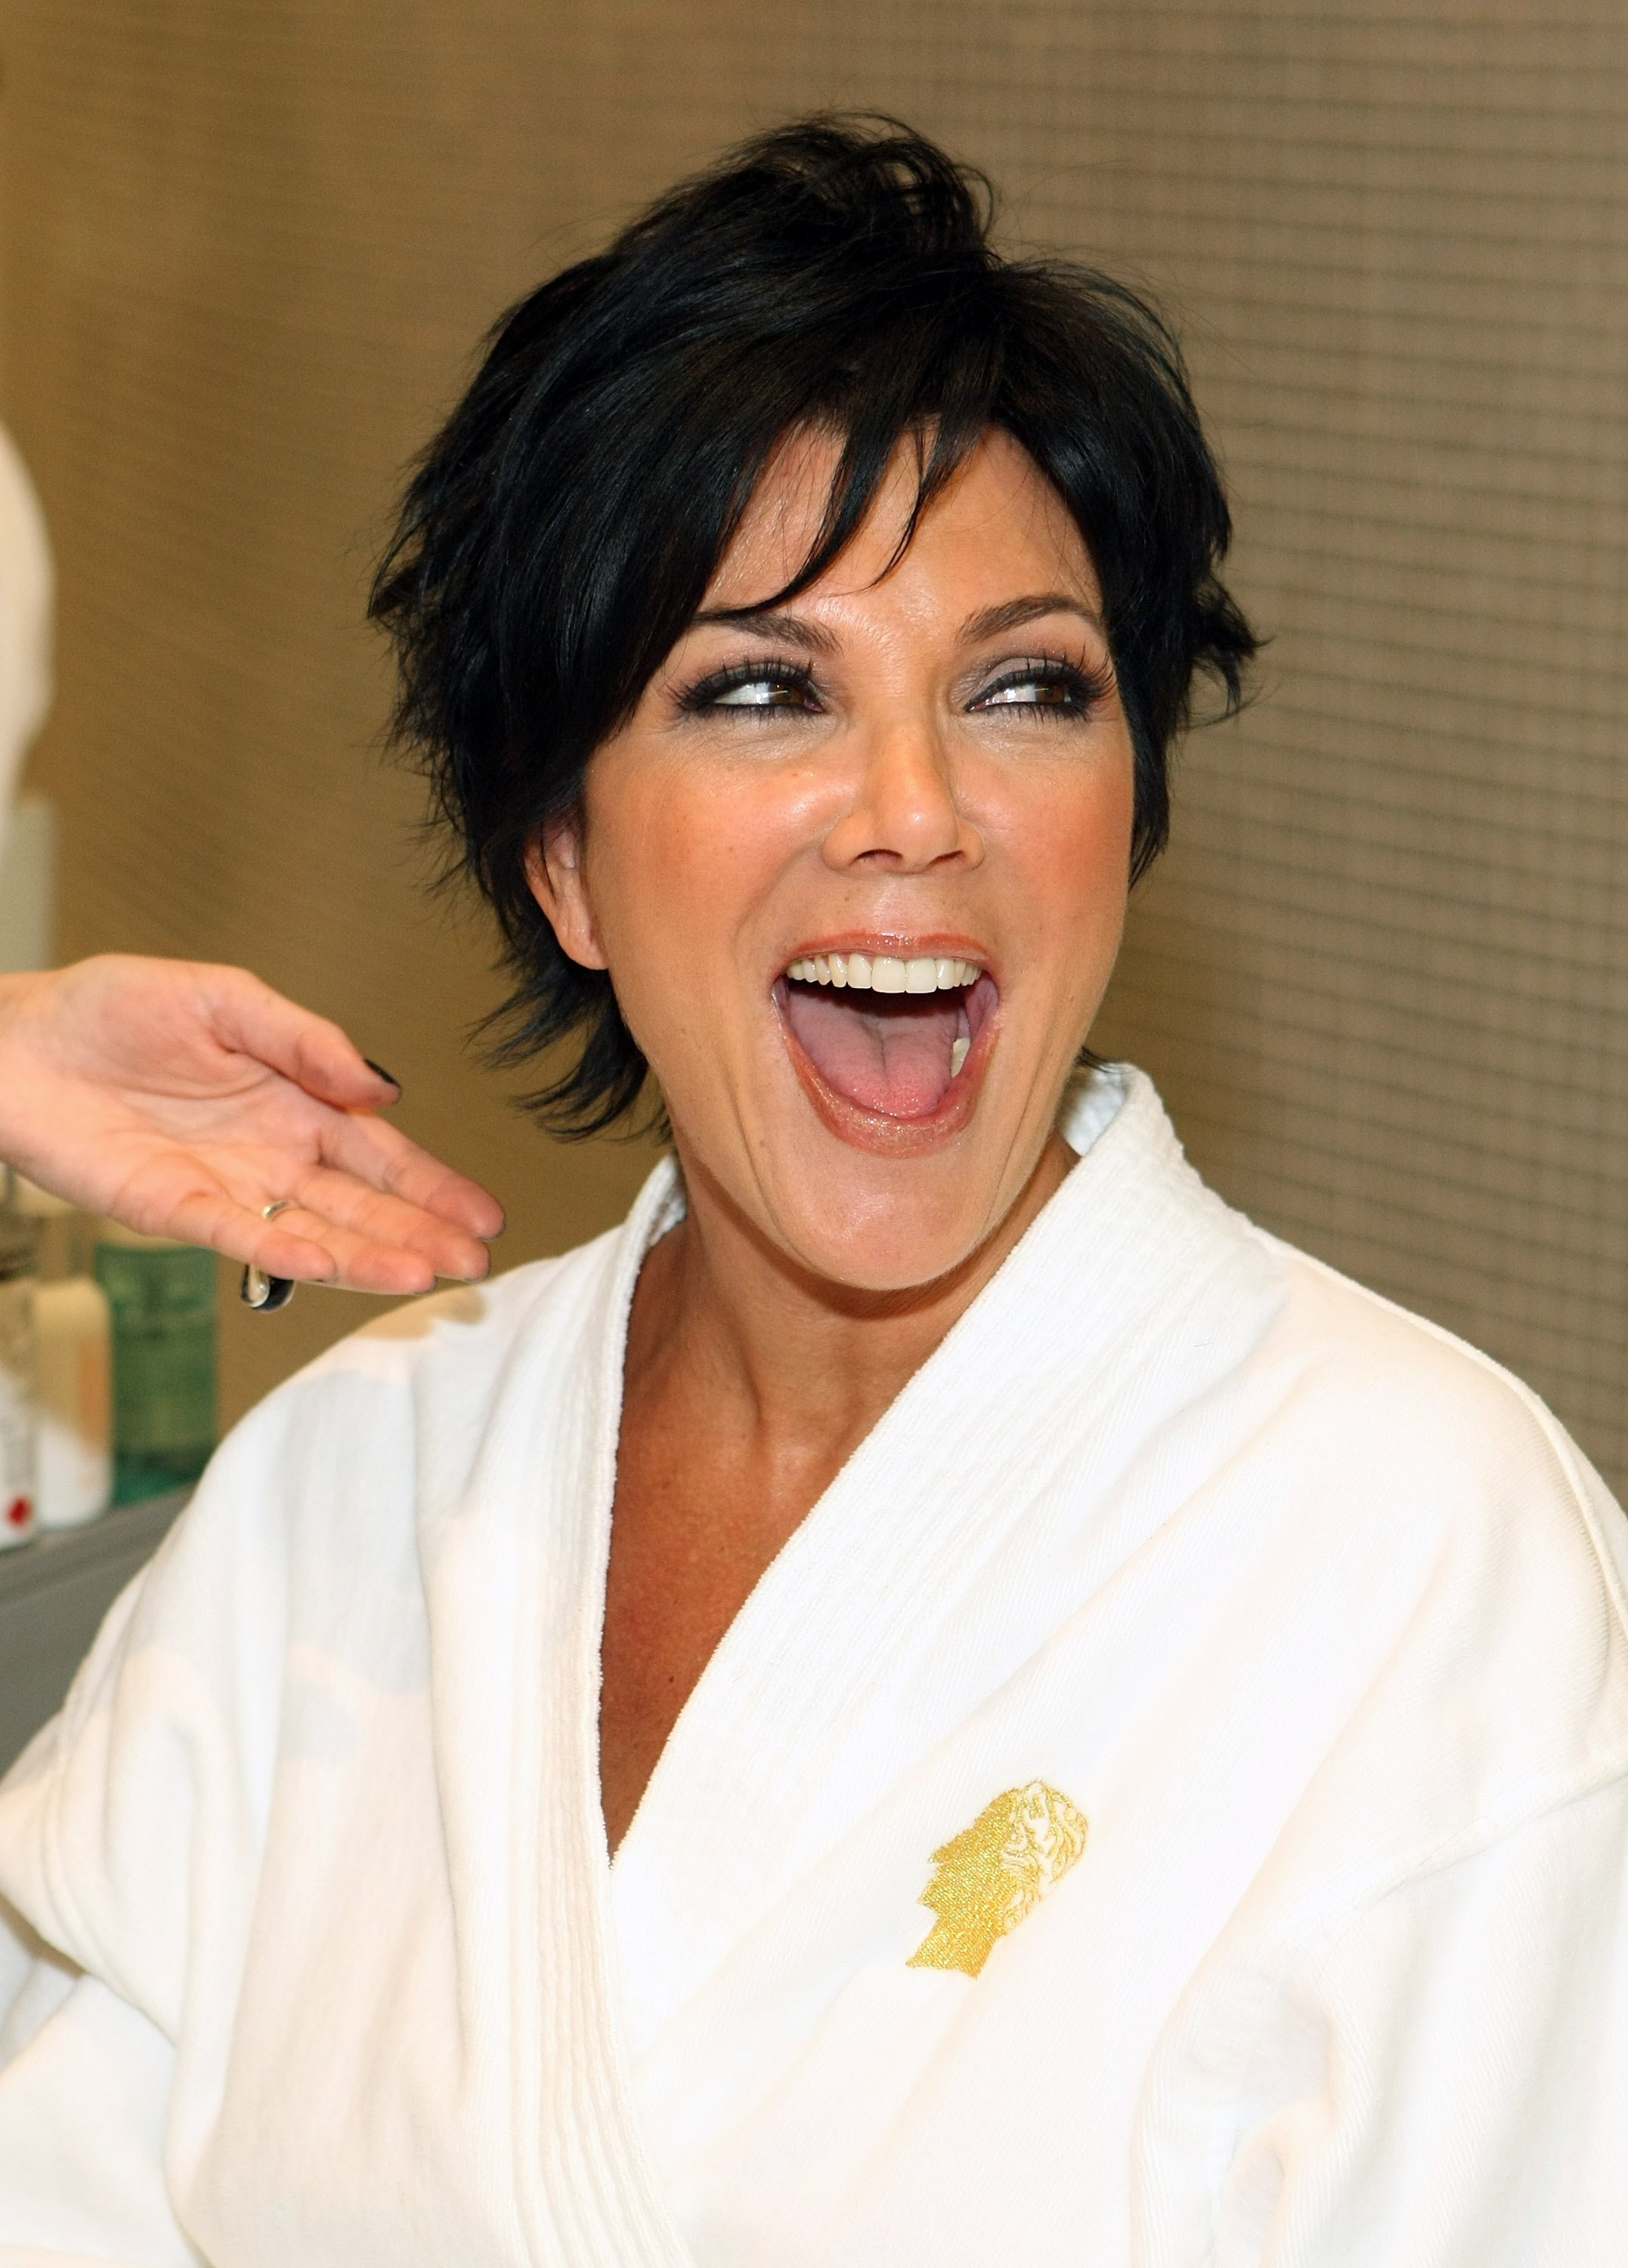 a5dfdc17 d52c 4e68 9297 f315f7c7c32e getty 82559955?w=960&h=540&fit=crop&crop=faces&auto=format&q=70 these kris jenner memes & tweets in response to the tristan thompson